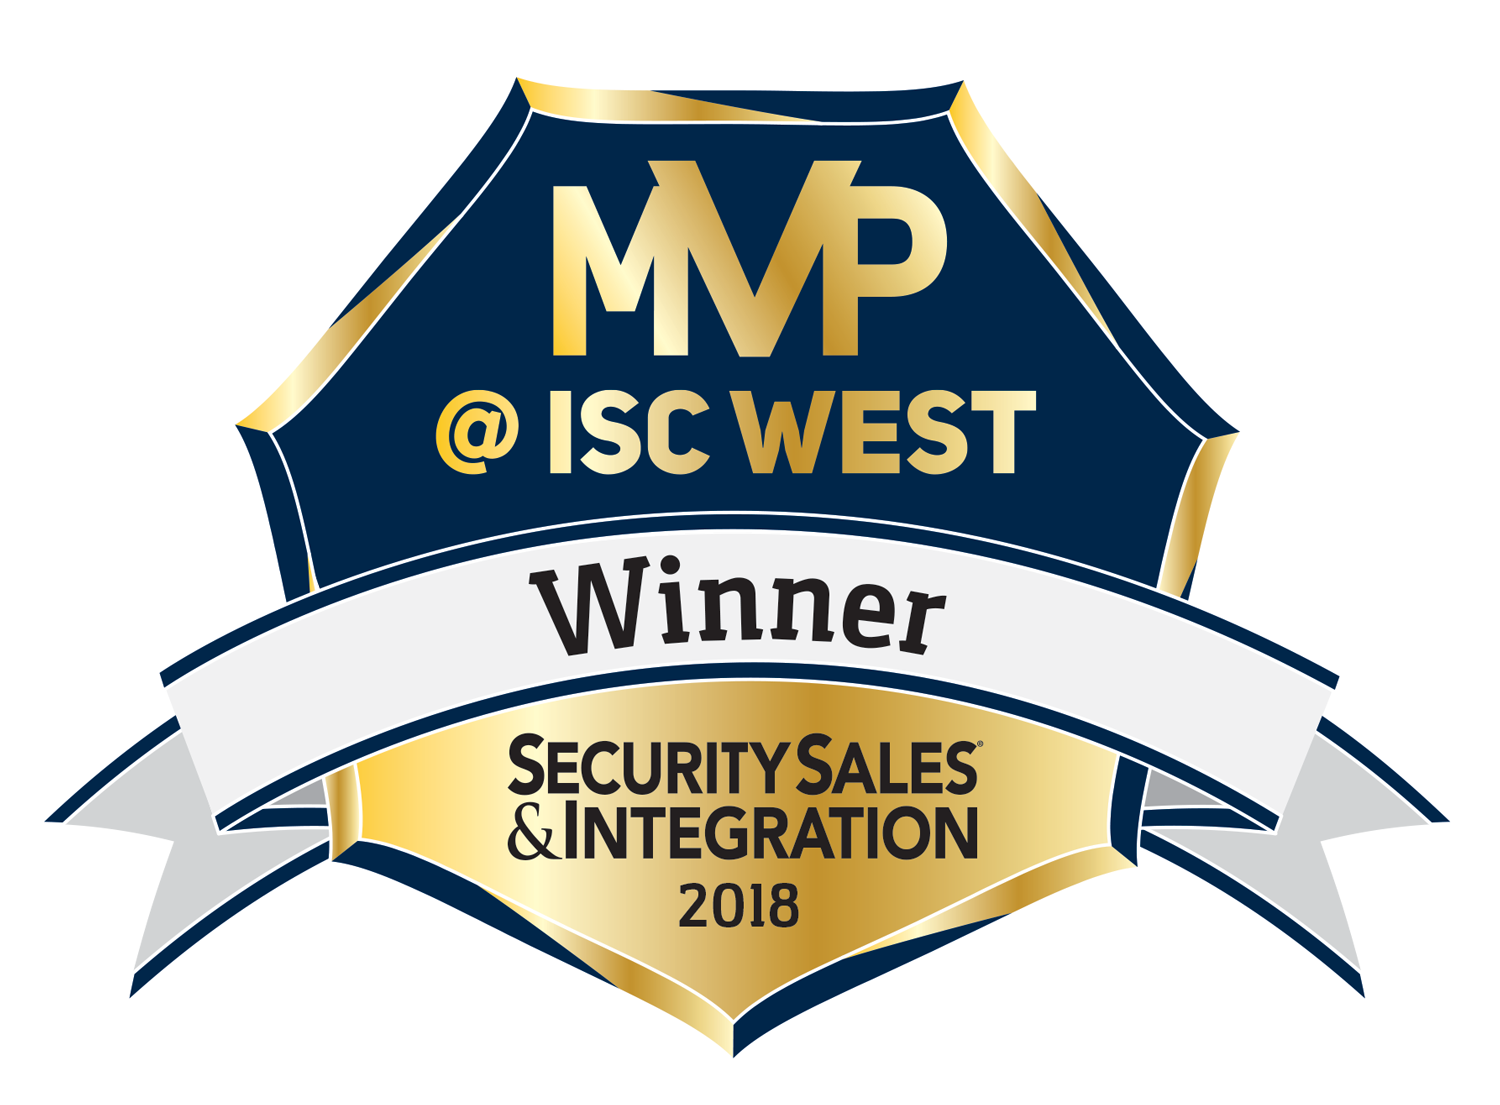 And Professional Security Icons Sales Integration Held The Most Valuable Product Awards Ceremony At Venetian Hotel Las Vegas